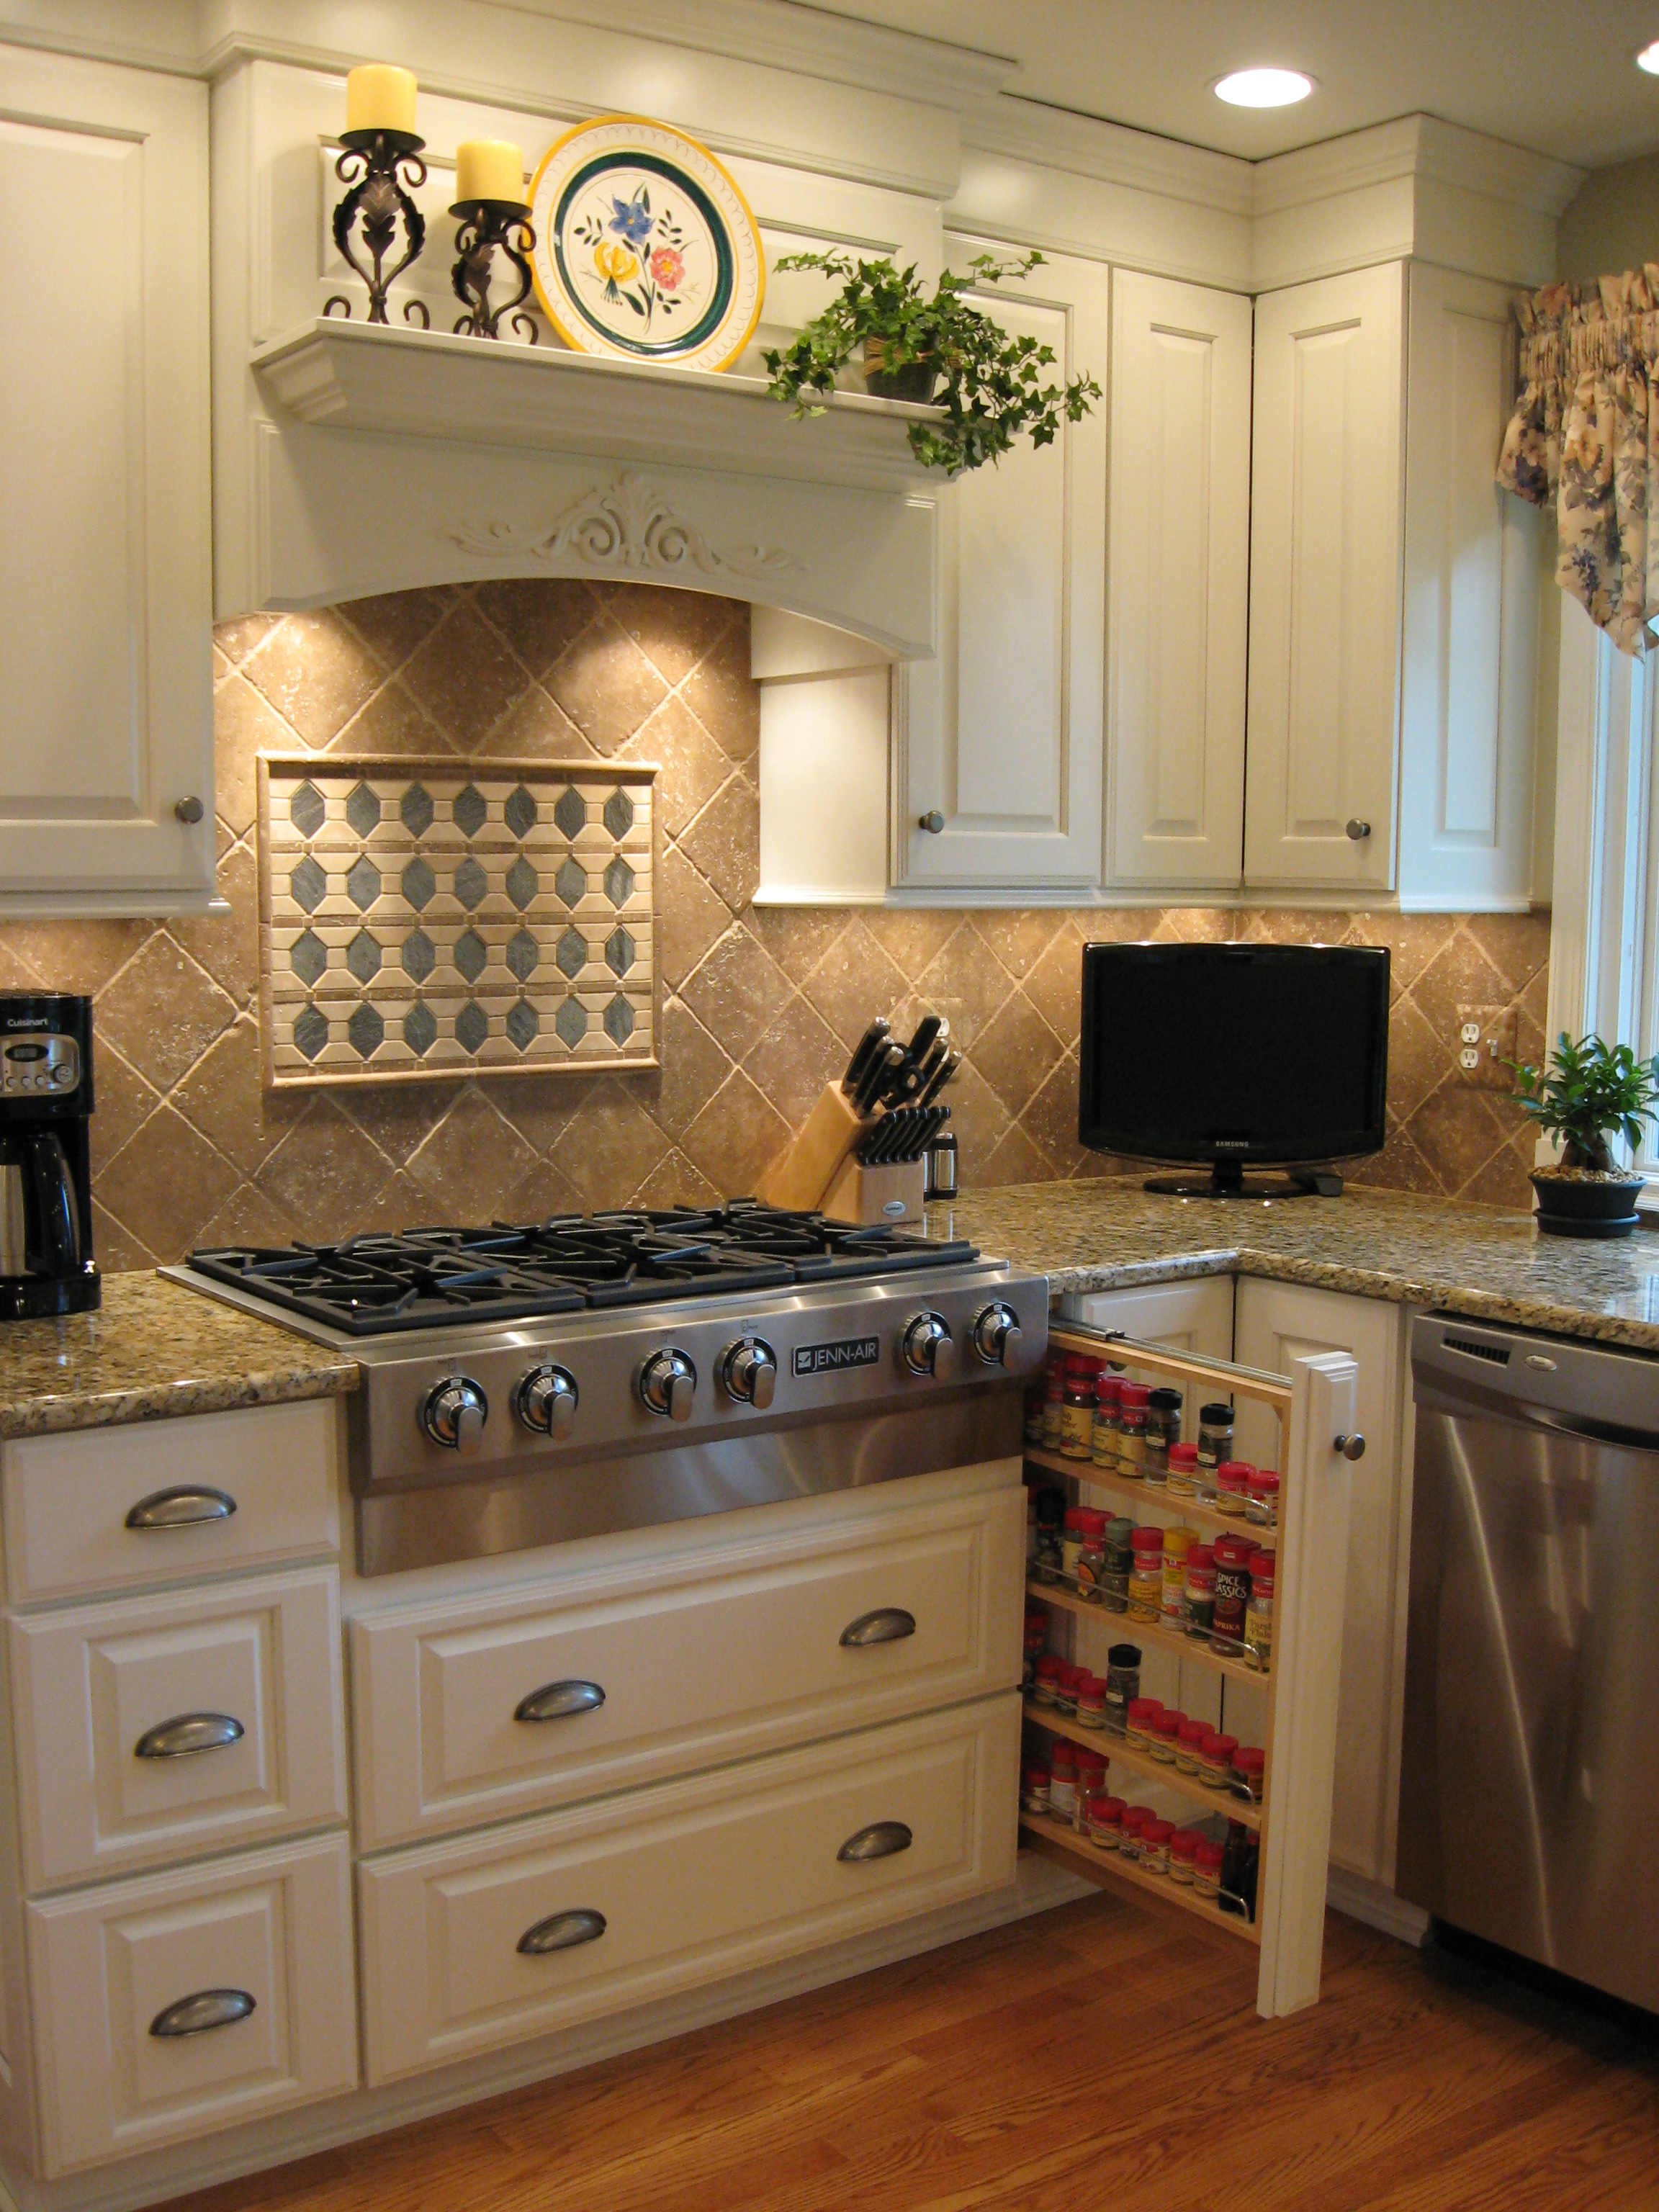 The Art Of Mosaics Nicely Done Kitchens Amp Baths